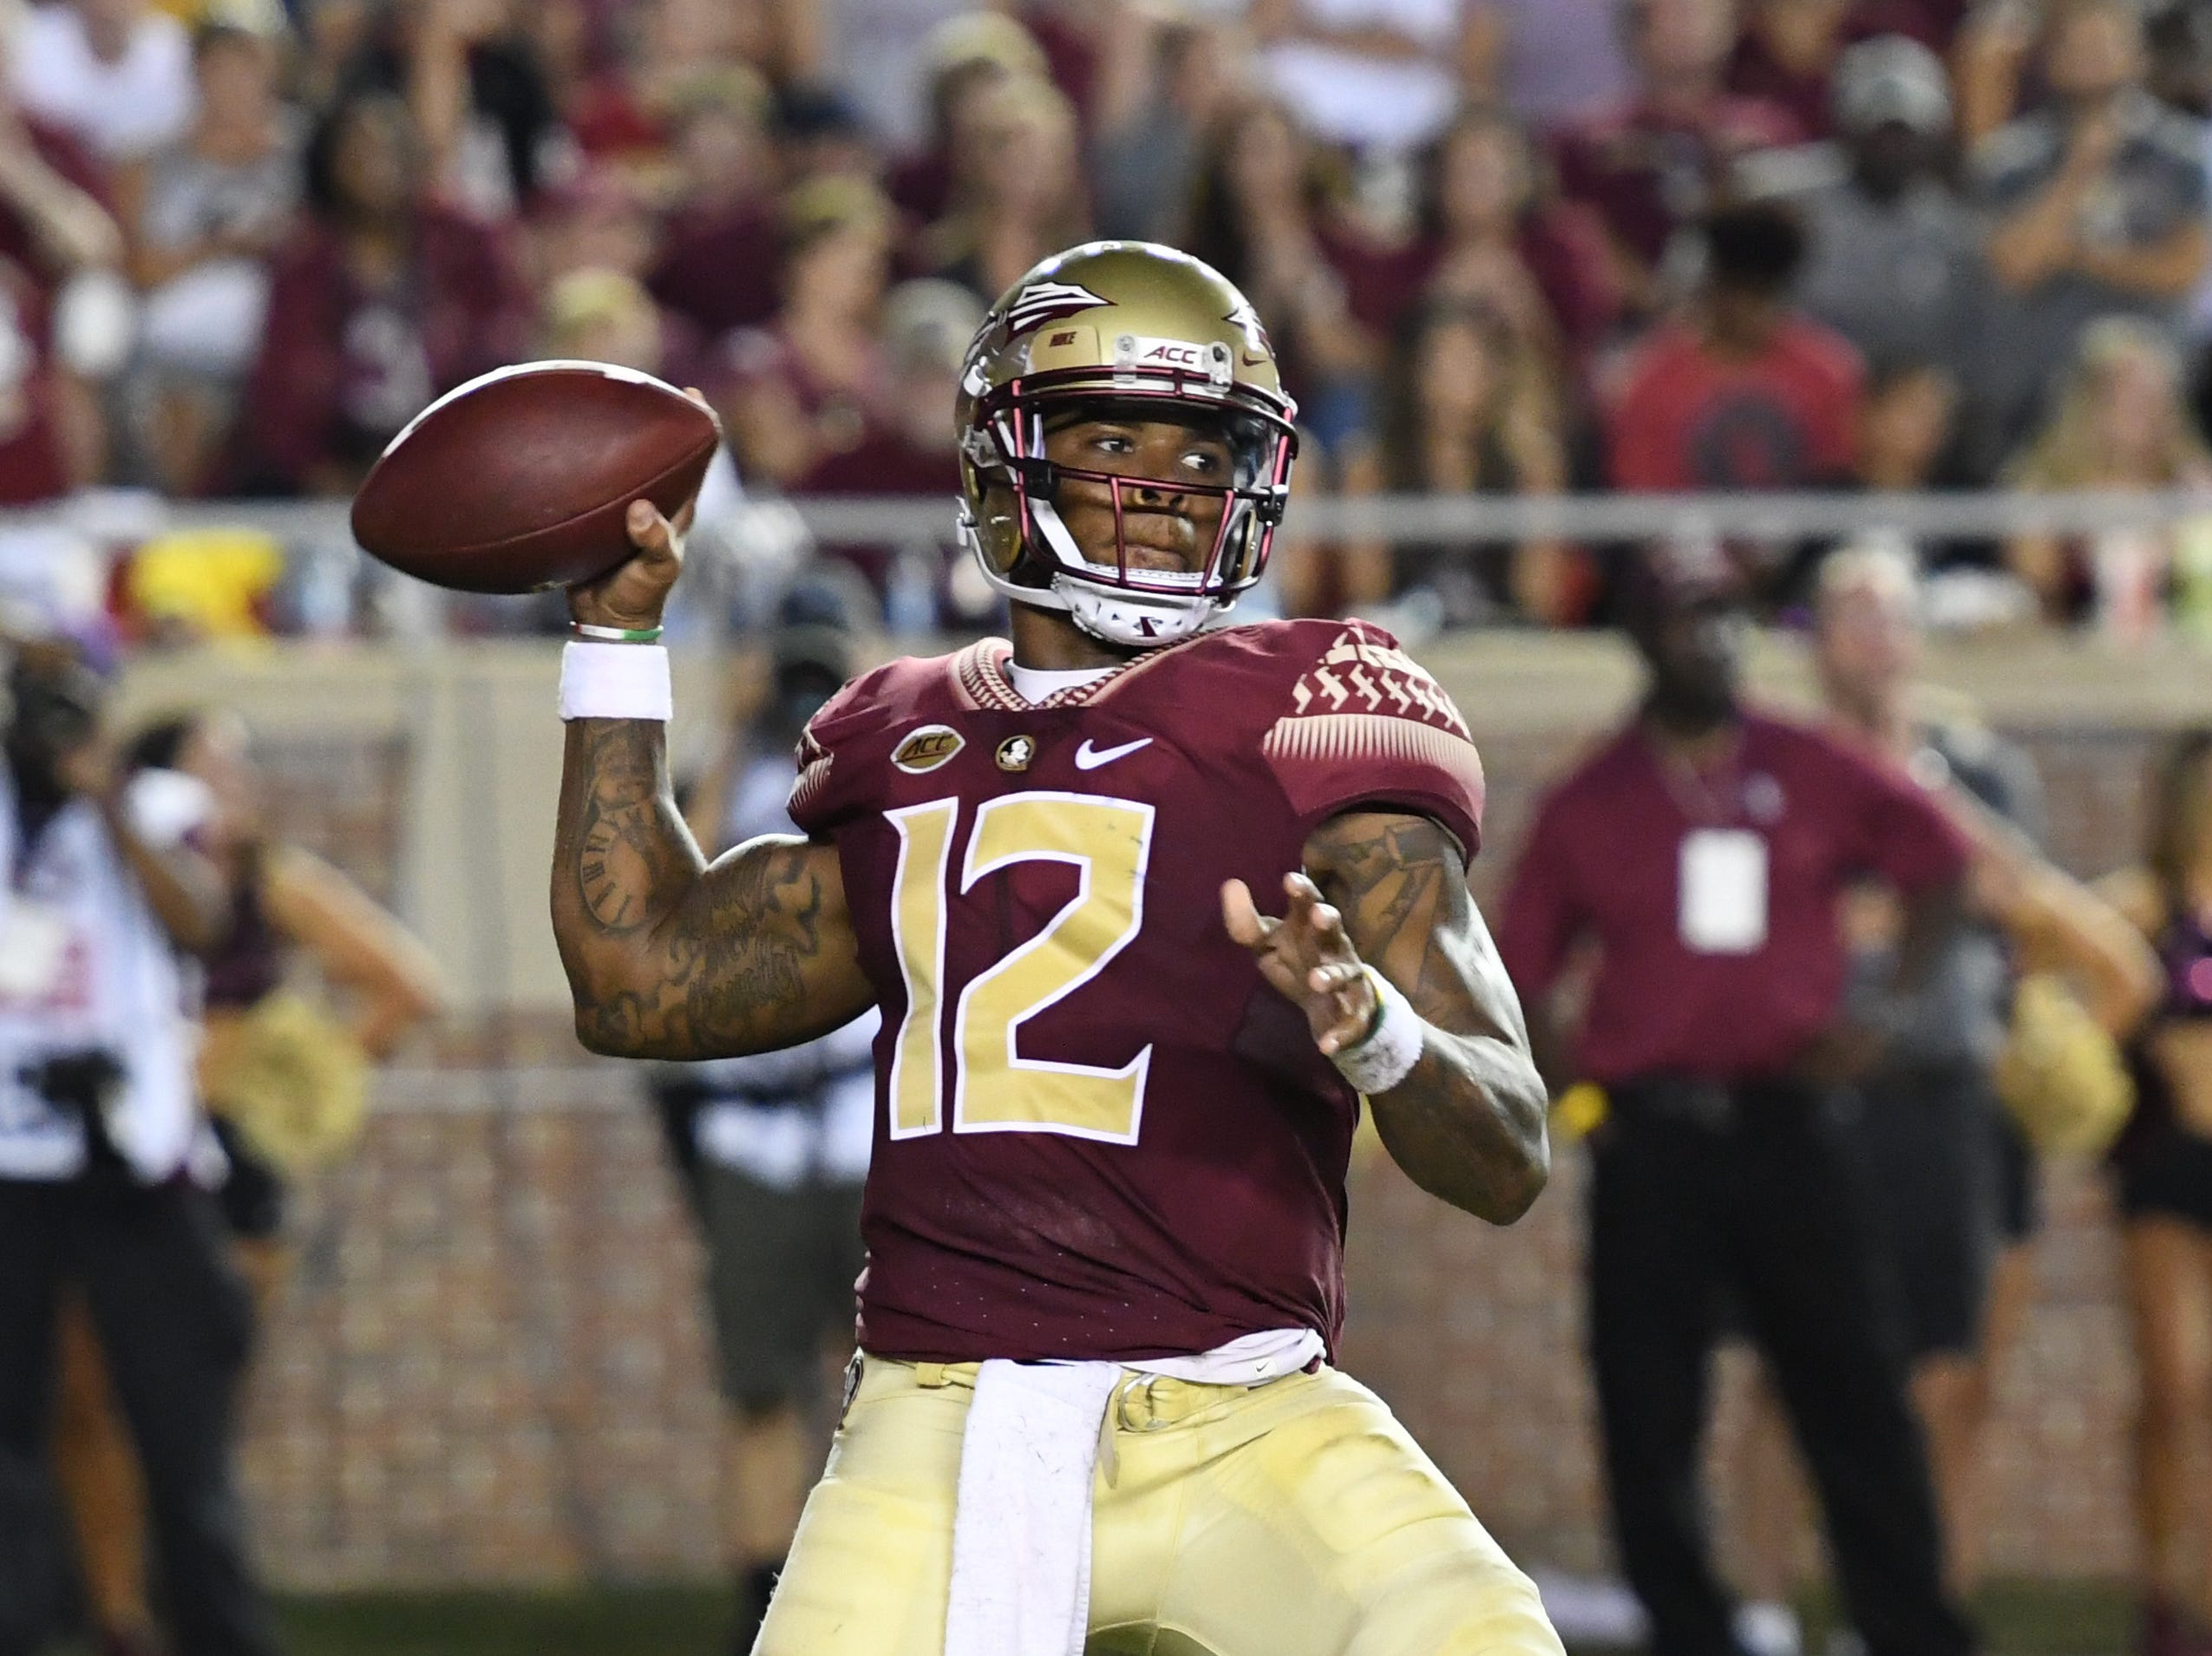 FSU redshirt junior Deondre Francois (12) throwing passing the football during the first quarter of FSU's matchup against Samford on Saturday night at Doak Campbell Stadium.